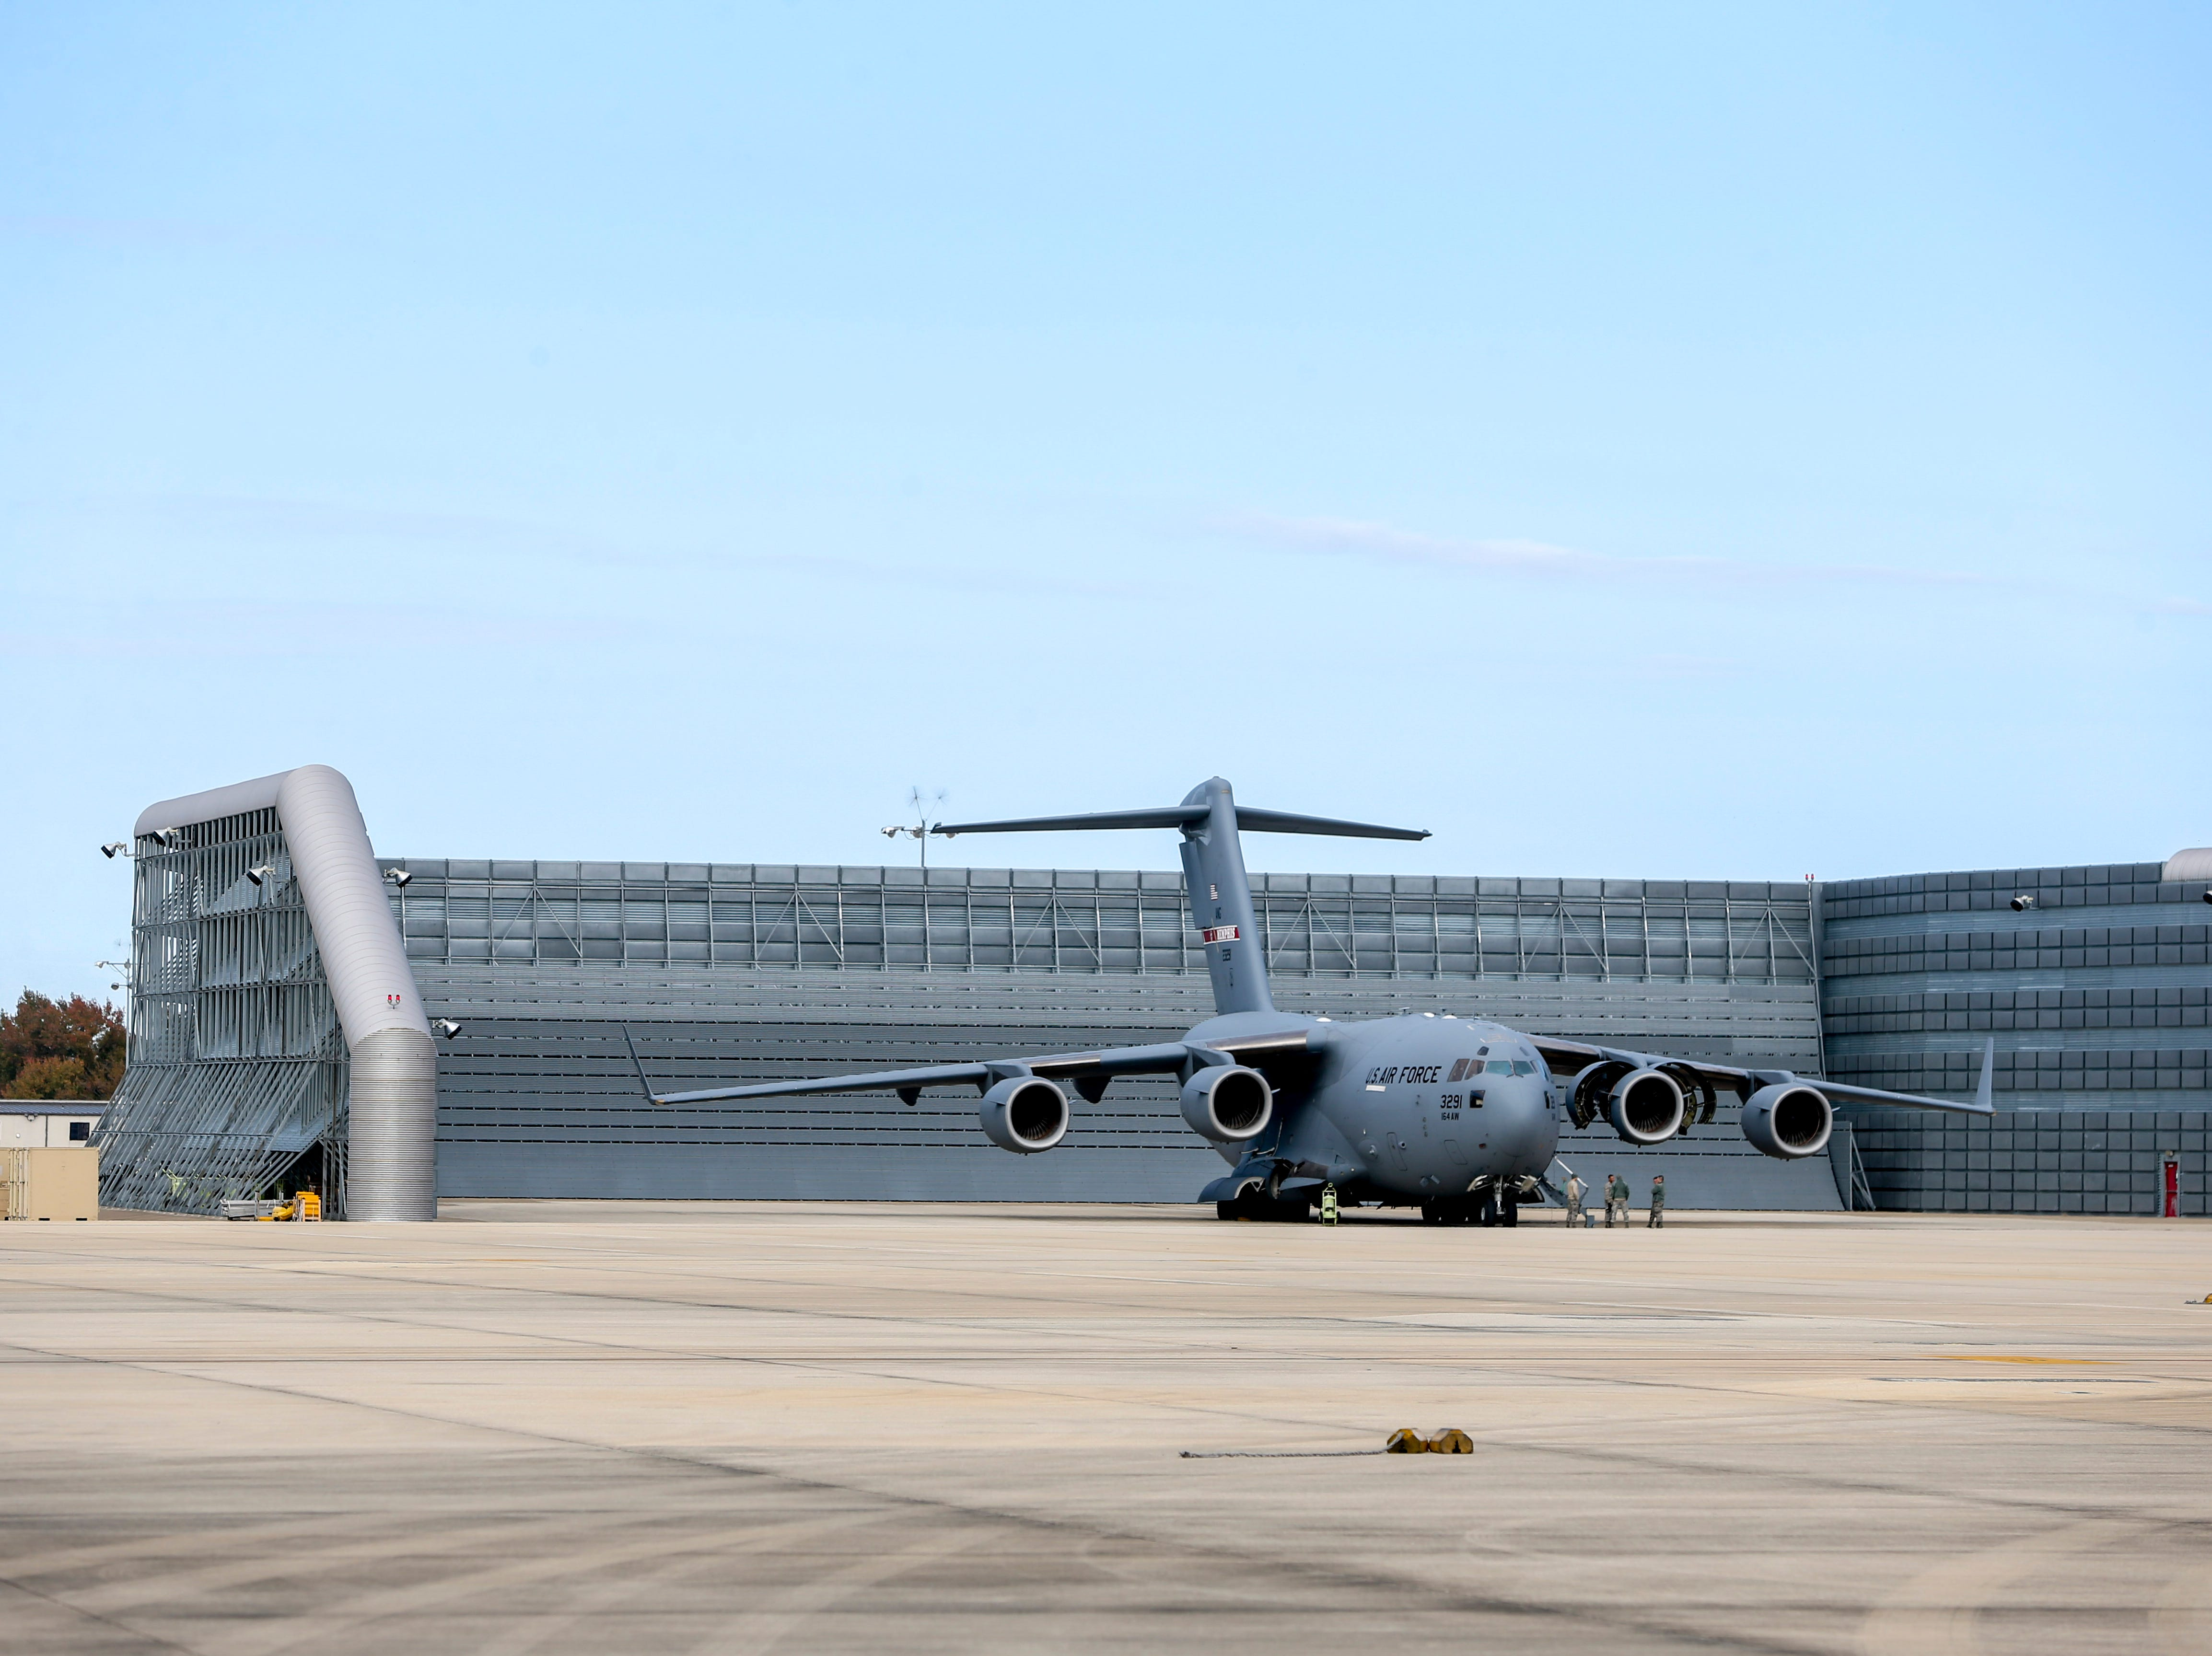 A C-17 can be seen in an engine testing facility during the annual Bosslift event put on by Employer Support of the Guard and Reserve (ESGR) and the Tennessee National Guard at 164th Airlift Wing in Memphis, Tenn., on Thursday, Nov. 8, 2018.